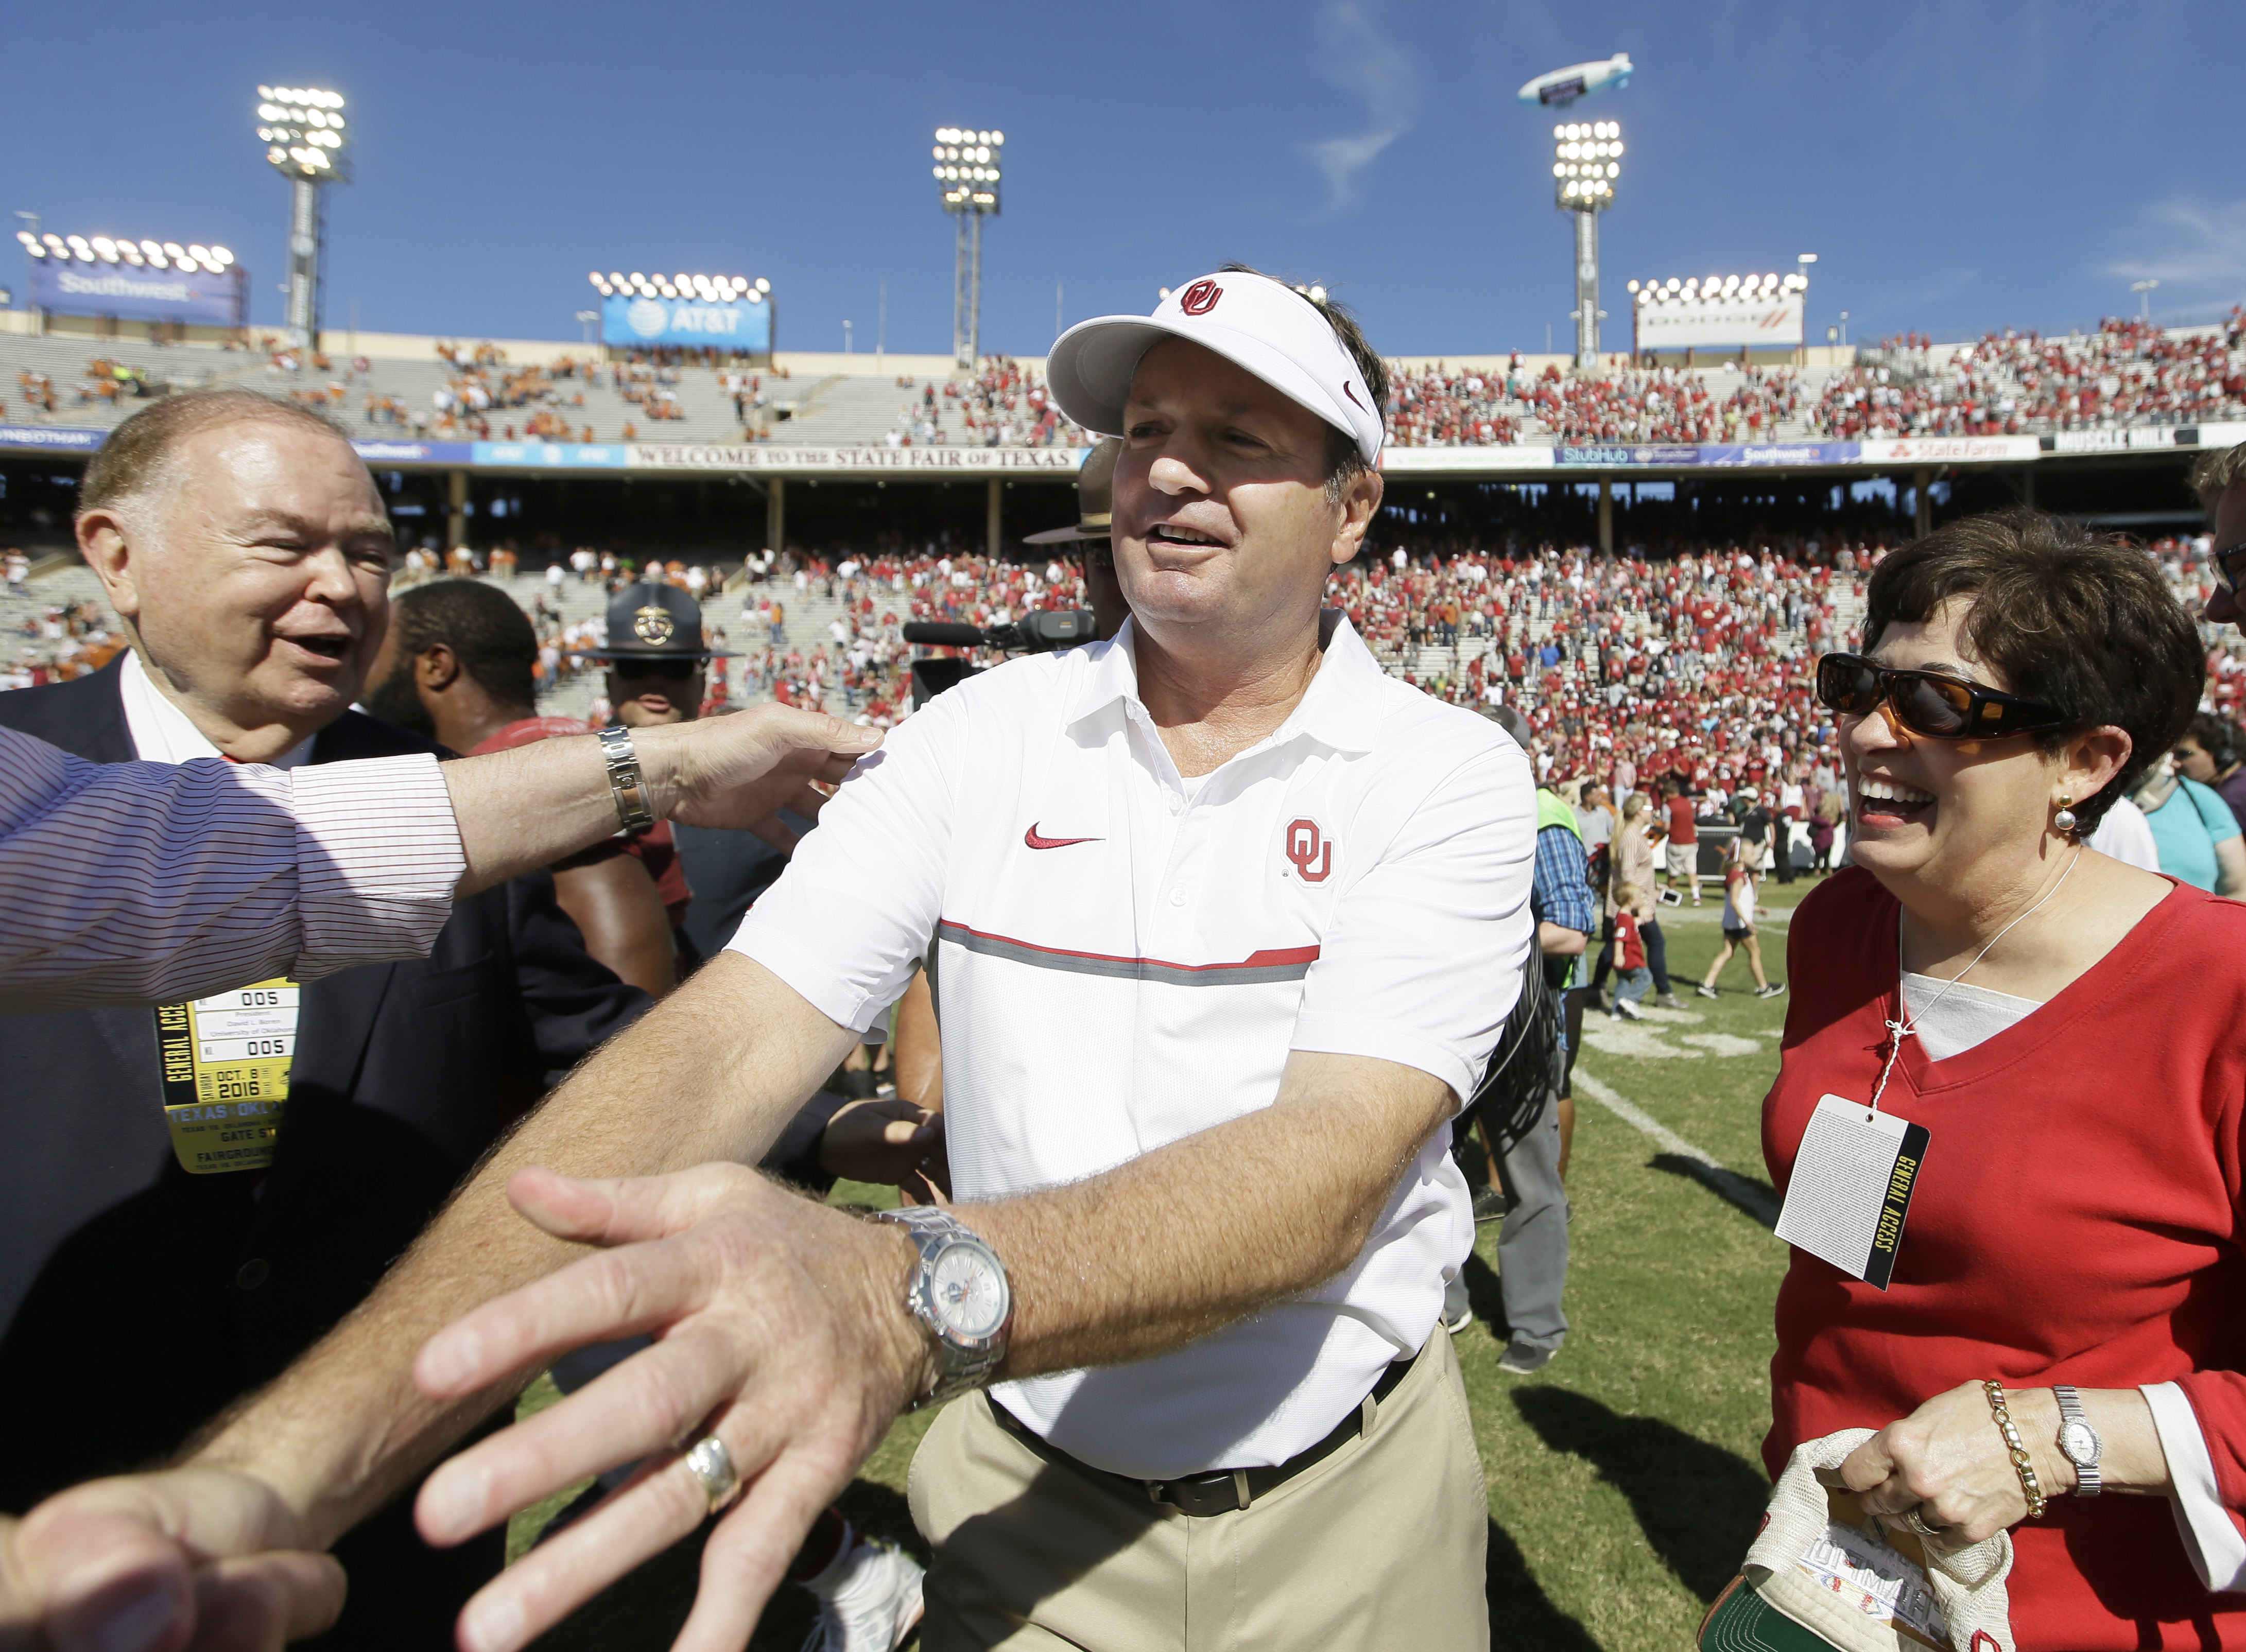 Oklahoma head coach Bob Stoops, center, is congratulated after their 45-40 win over Texas in an NCAA college football game in Dallas Saturday, Oct. 8, 2016. (AP Photo/LM Otero)